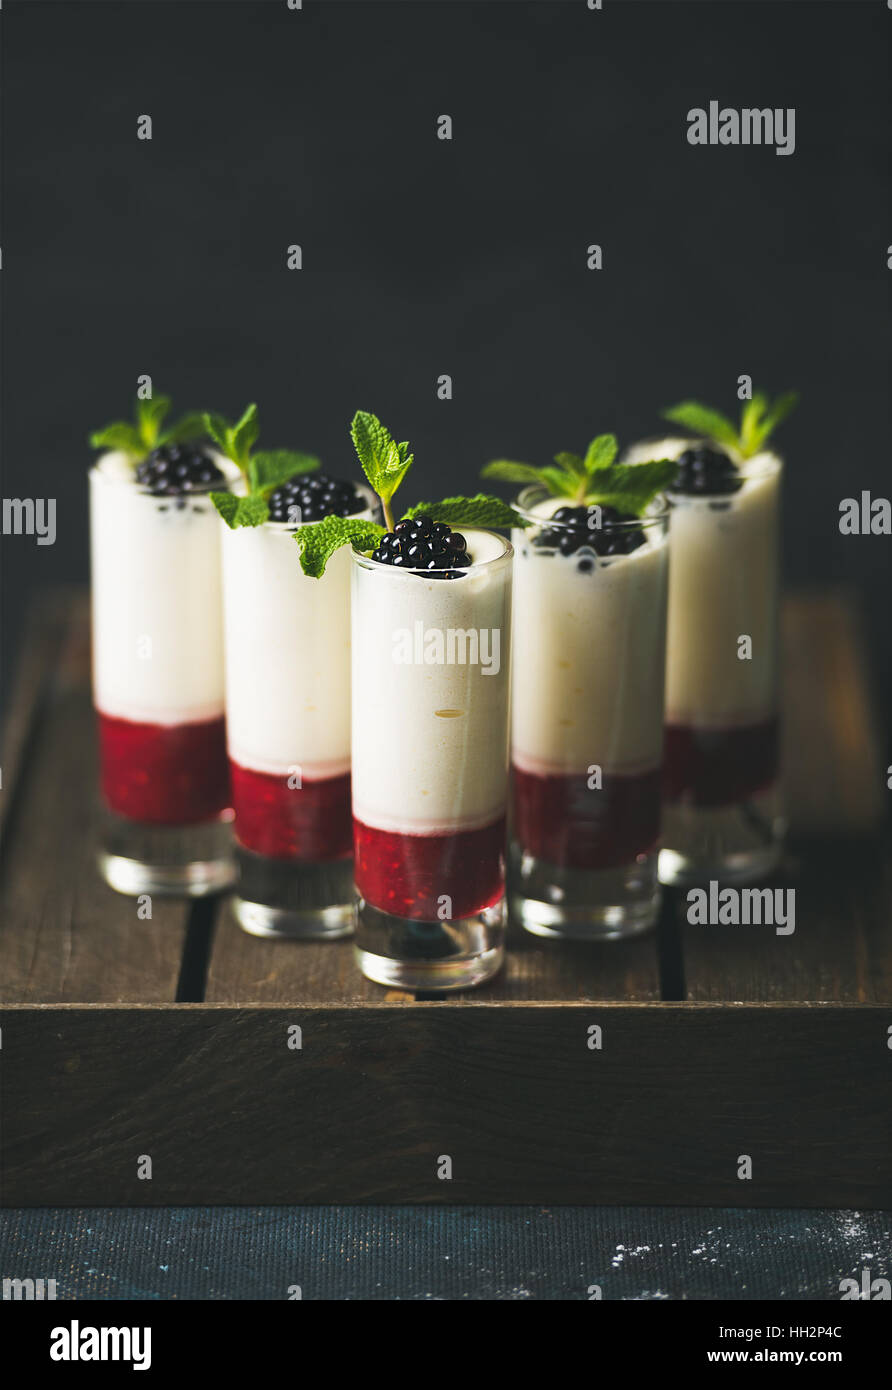 Homemade desserts with fresh blackberry and mint over dark background - Stock Image